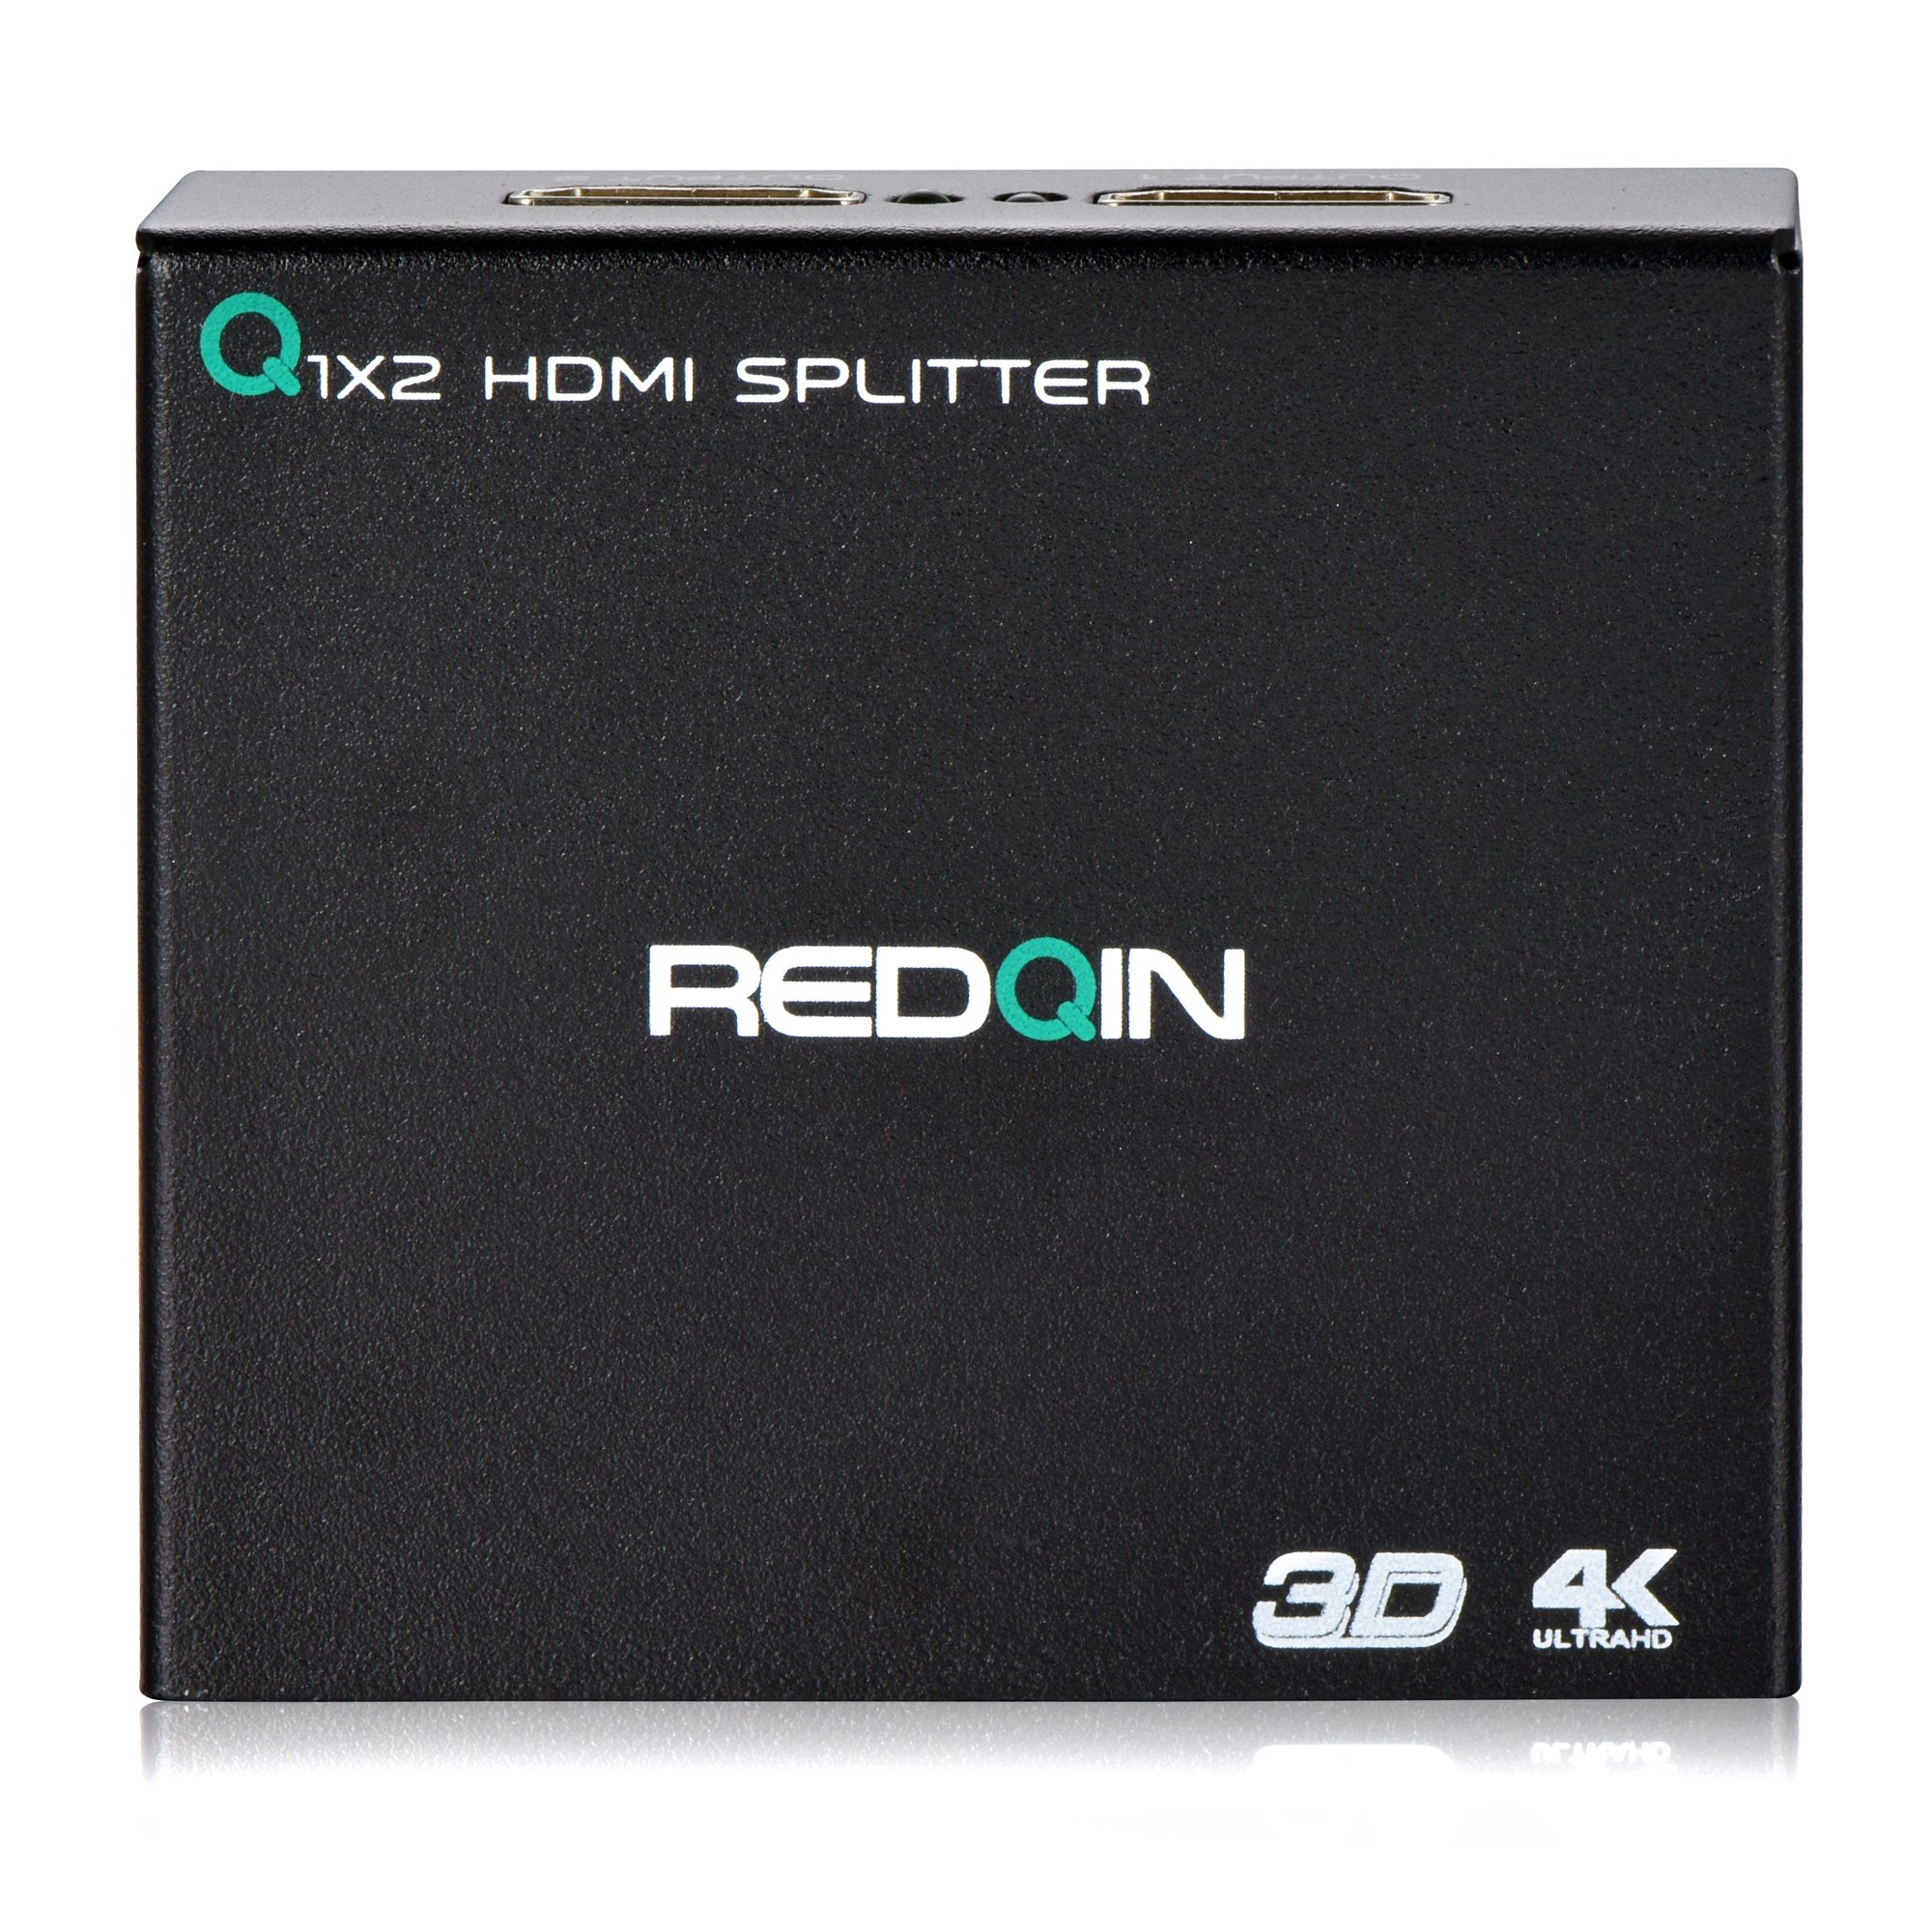 HDMI Splitter 1 in 2 out REDQIN HDMI V1.4 1x2 Splitter Amplifier with Full Ultra HD 4K 1080P 3D (1 HDMI to 2 HDMI)